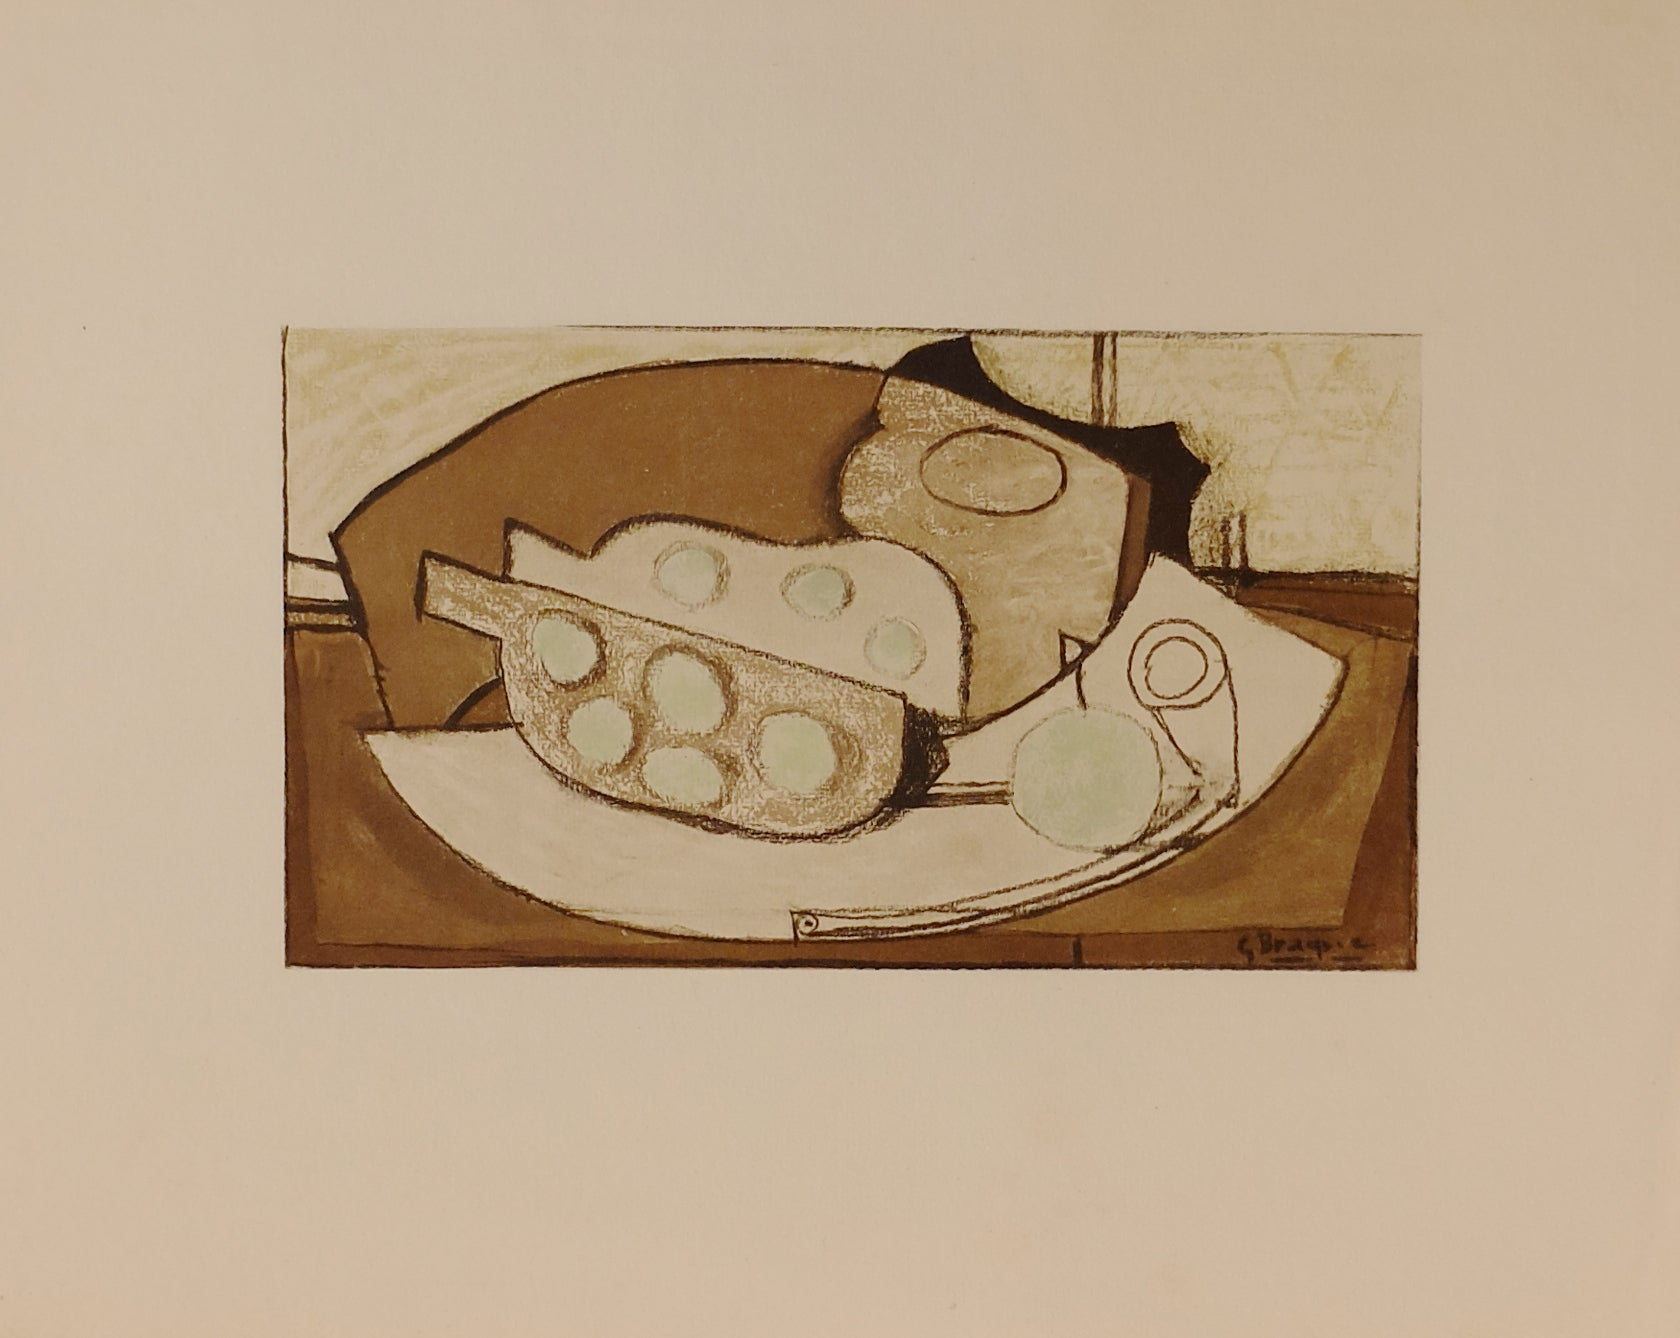 George Braque - Grenade et Pipe - Gallery Ten - Original Print